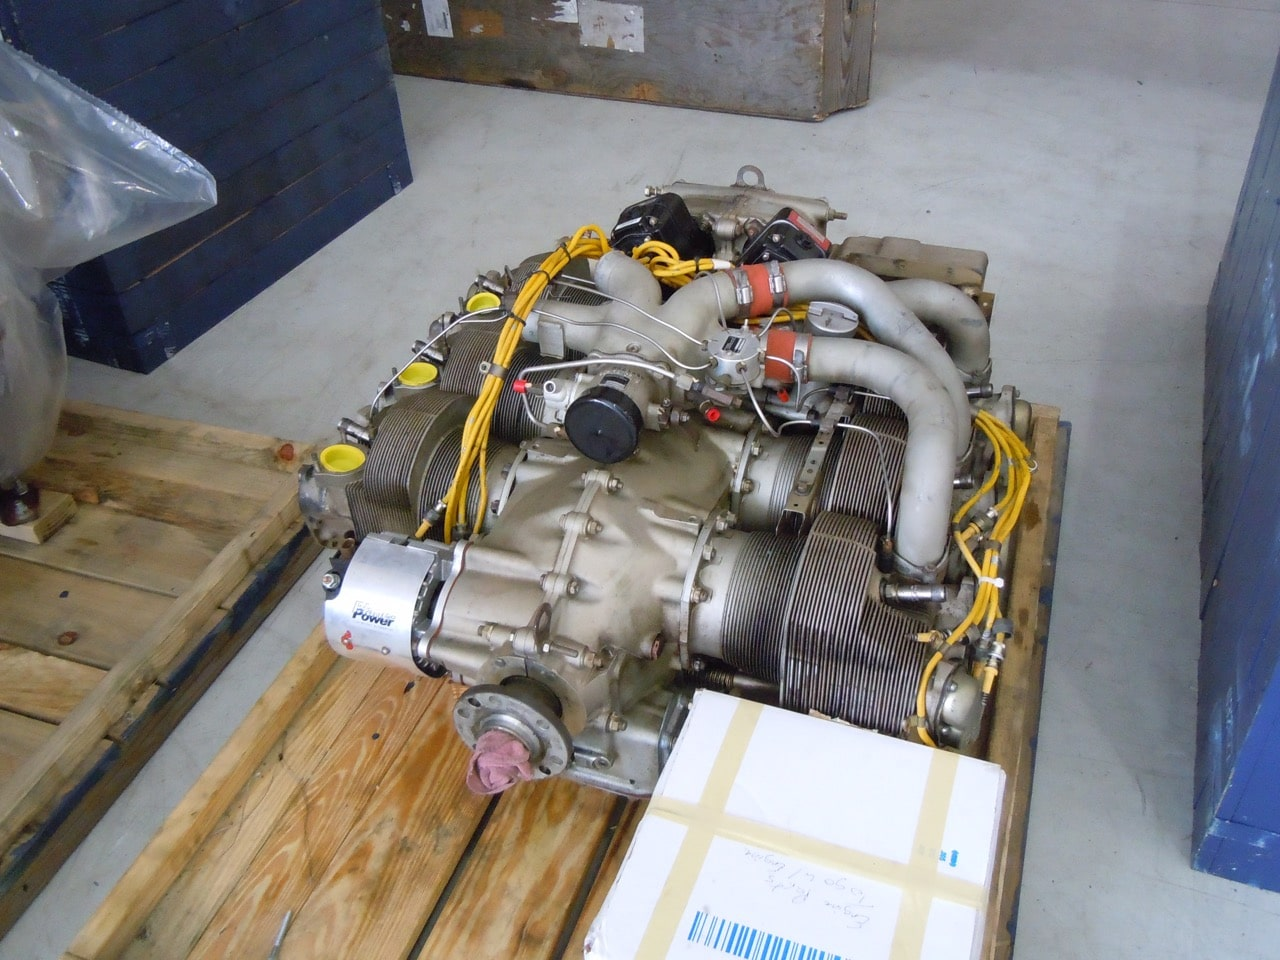 A surprise view of an engine set for unwarranted euthanasia